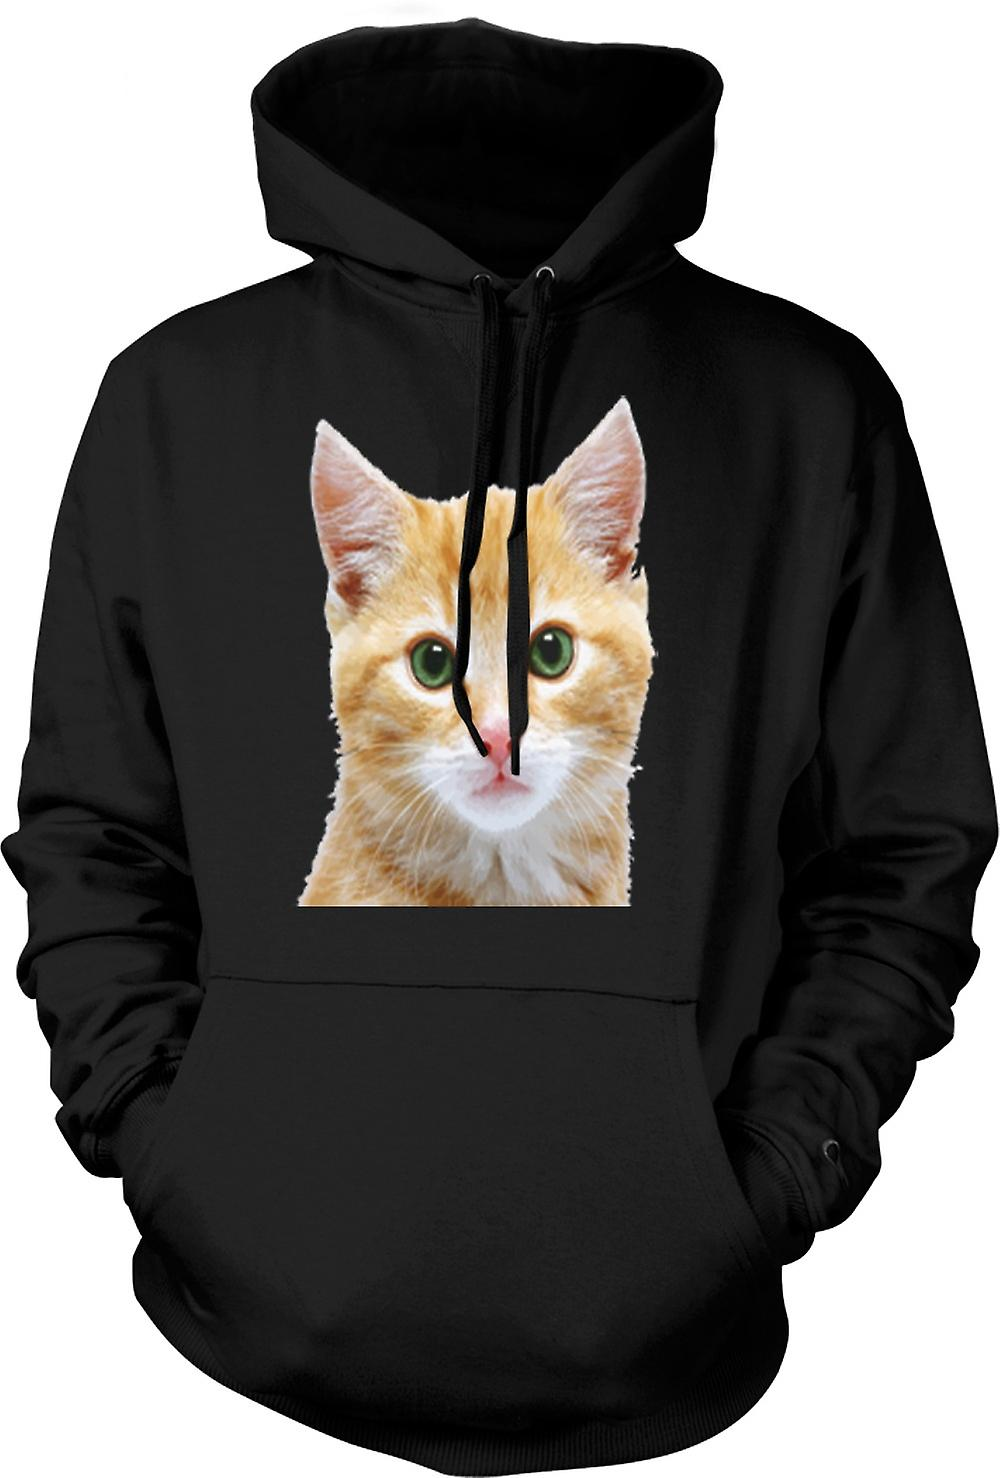 Kids Hoodie - Cute Red Kitten Face Portrait